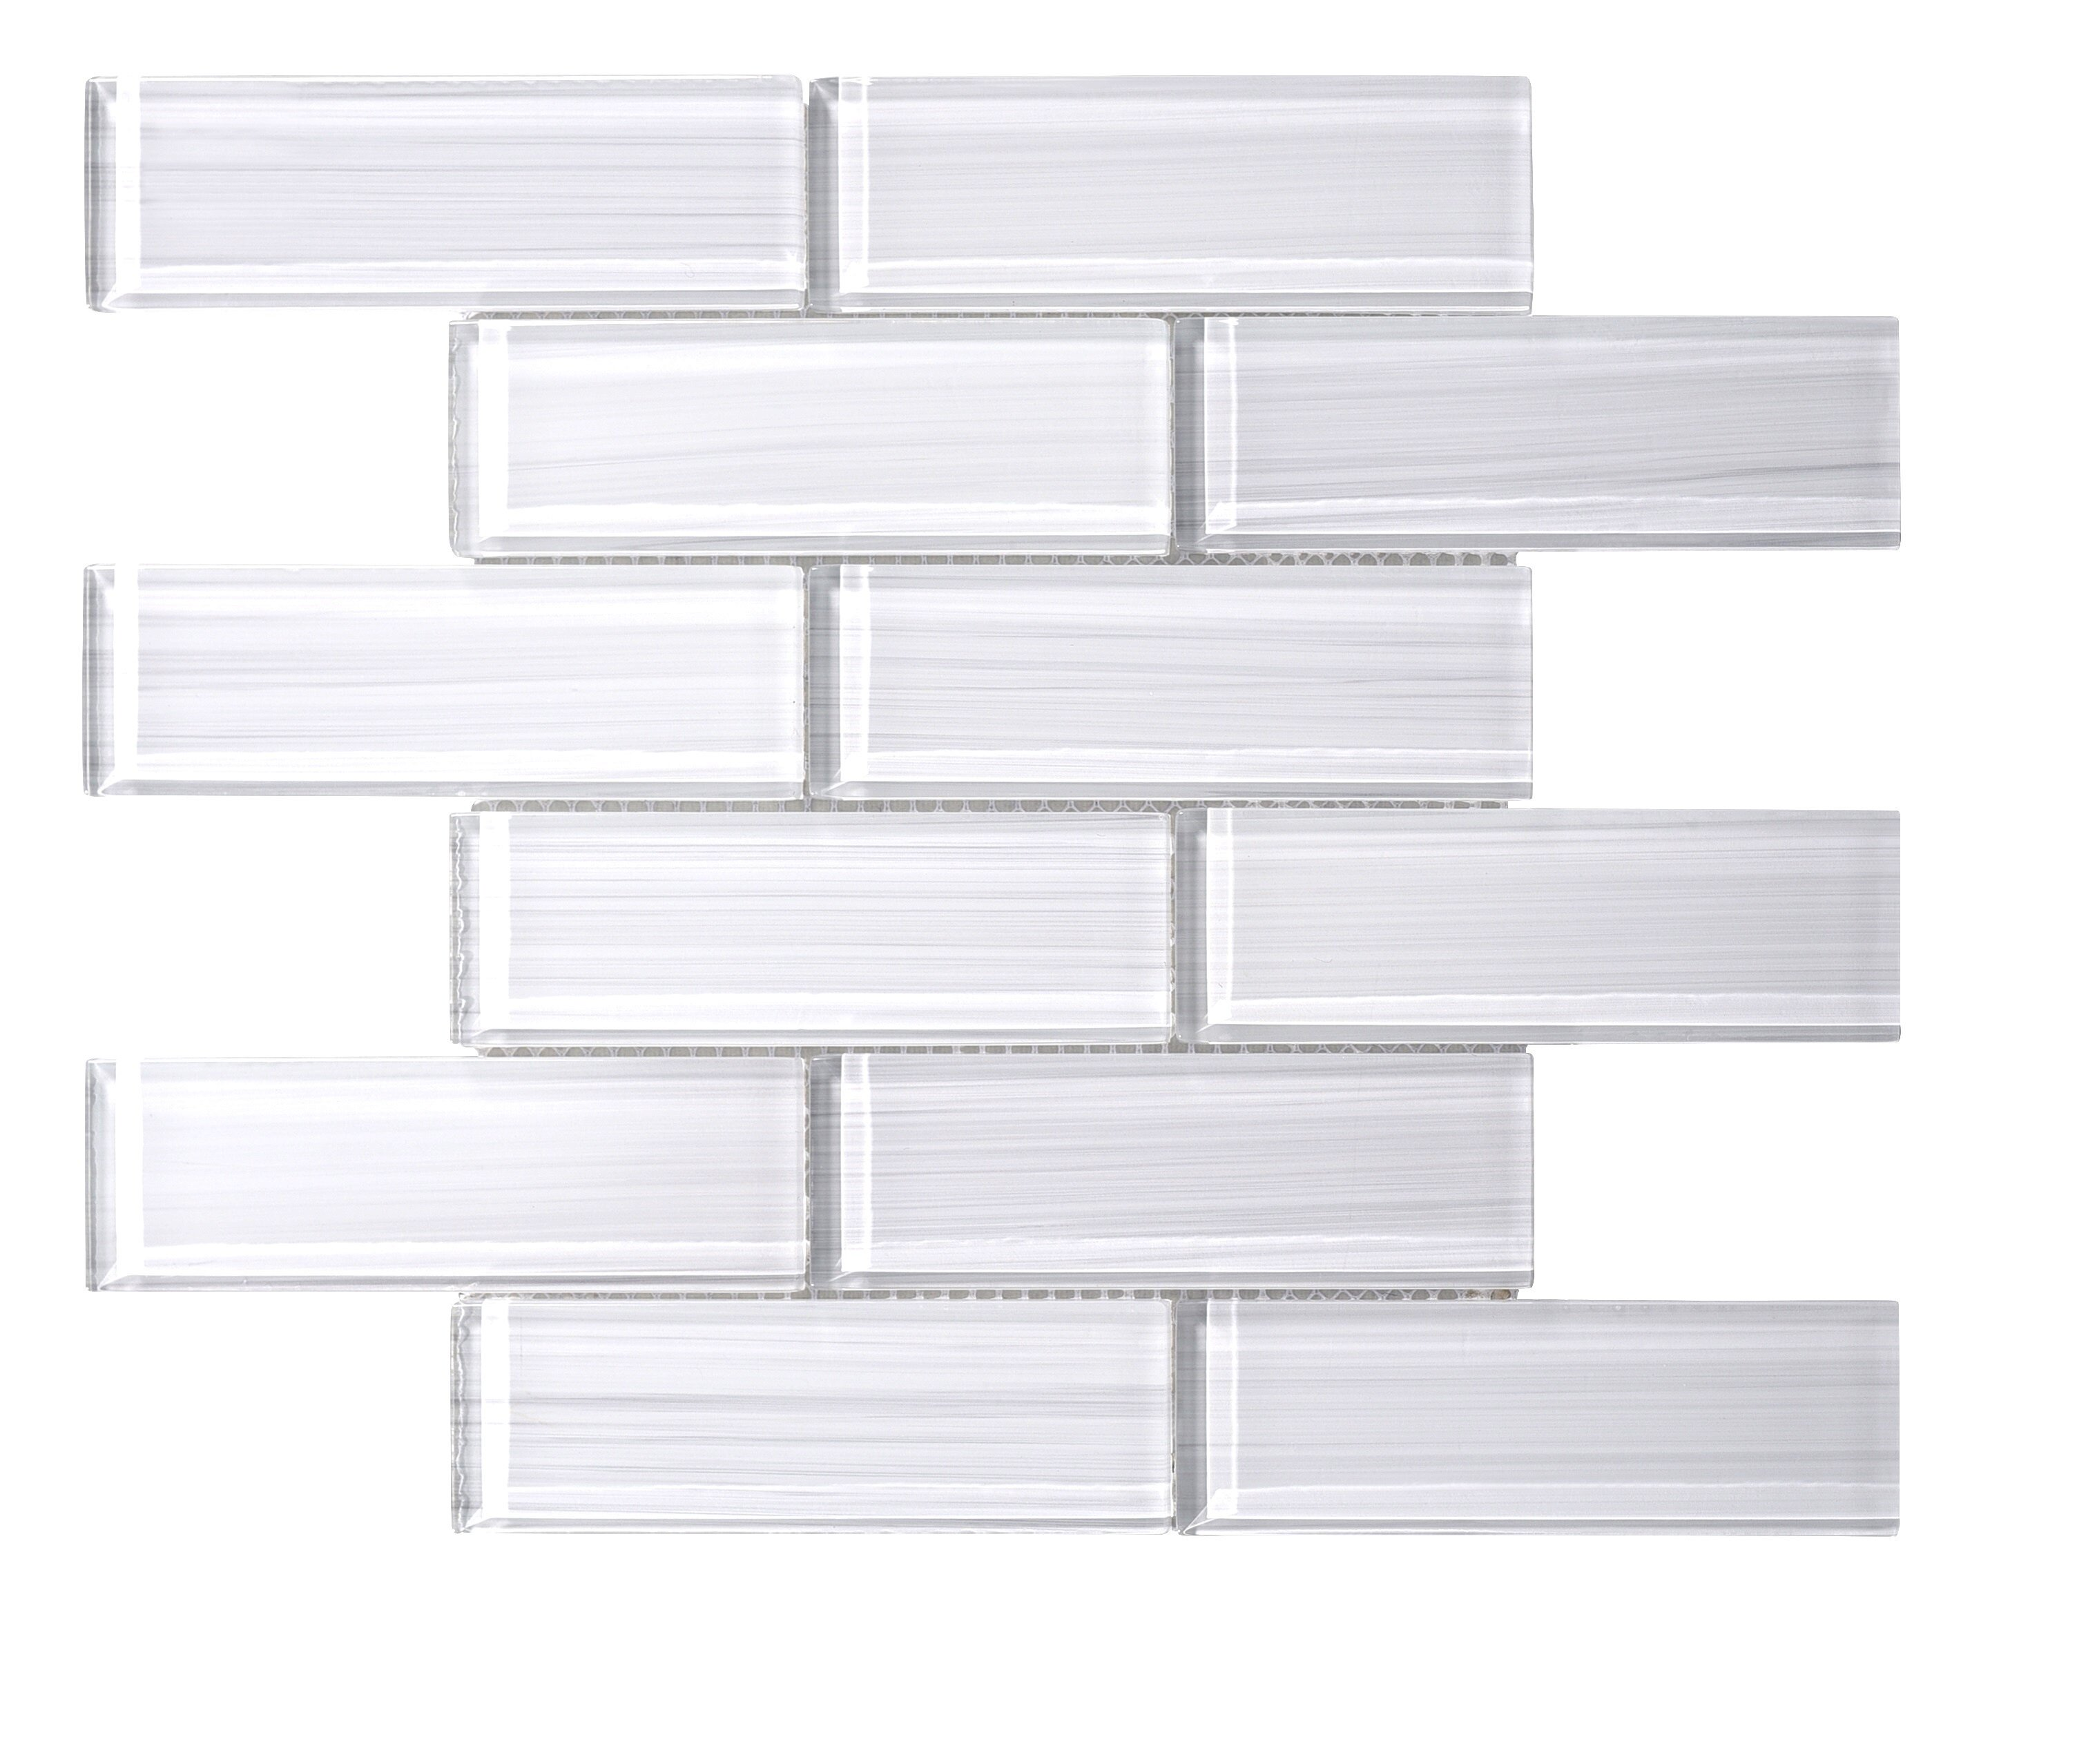 Ws Tiles Premium Series 2 X 6 Hand Painted Gl Subway Tile In